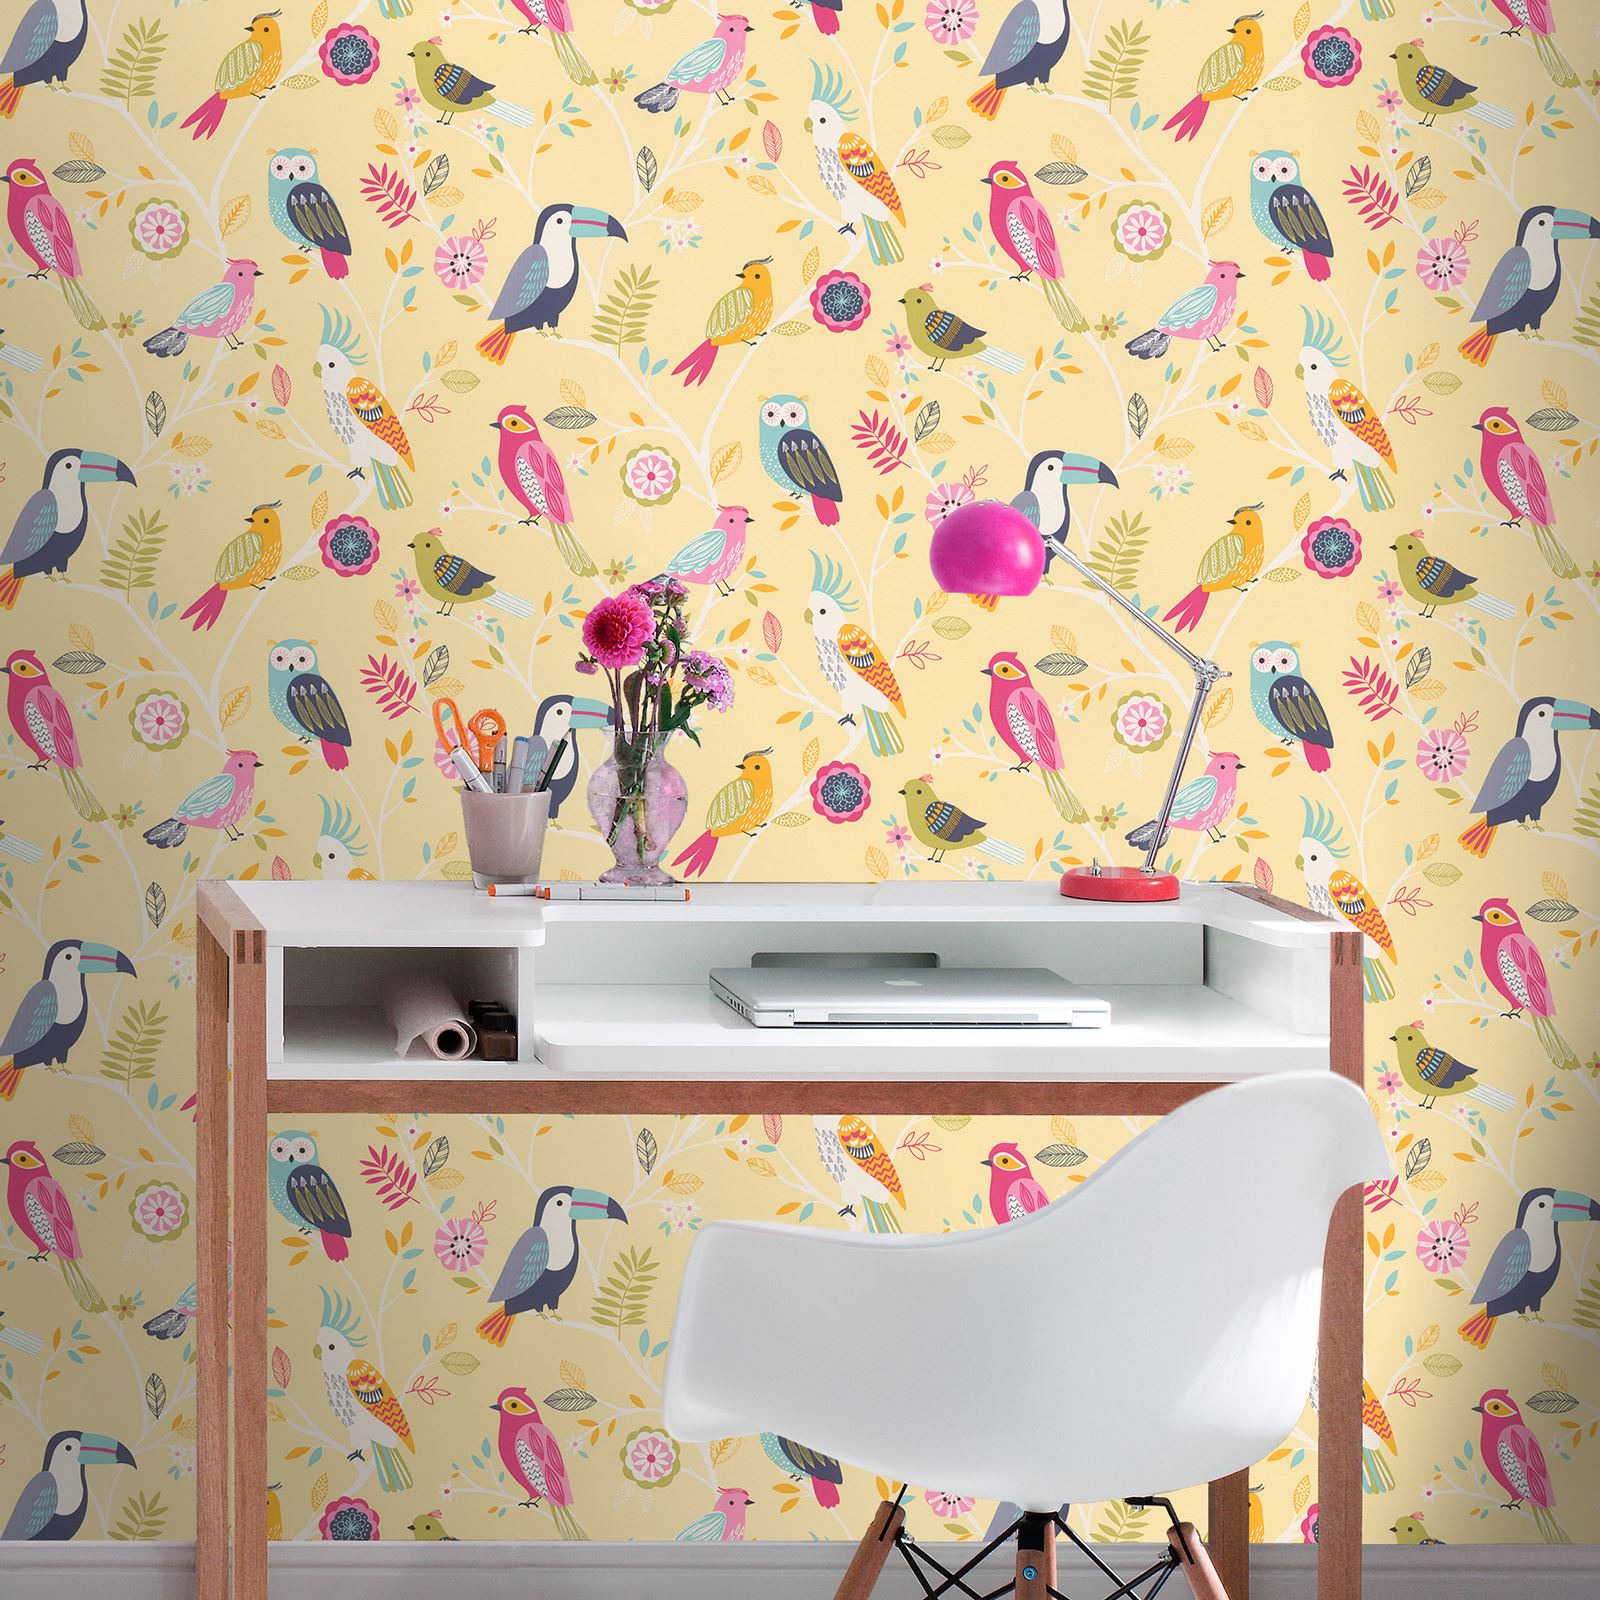 GIRLS CHIC WALLPAPER KIDS BEDROOM FEATURE WALL DECOR VARIOUS DESIGNS ...